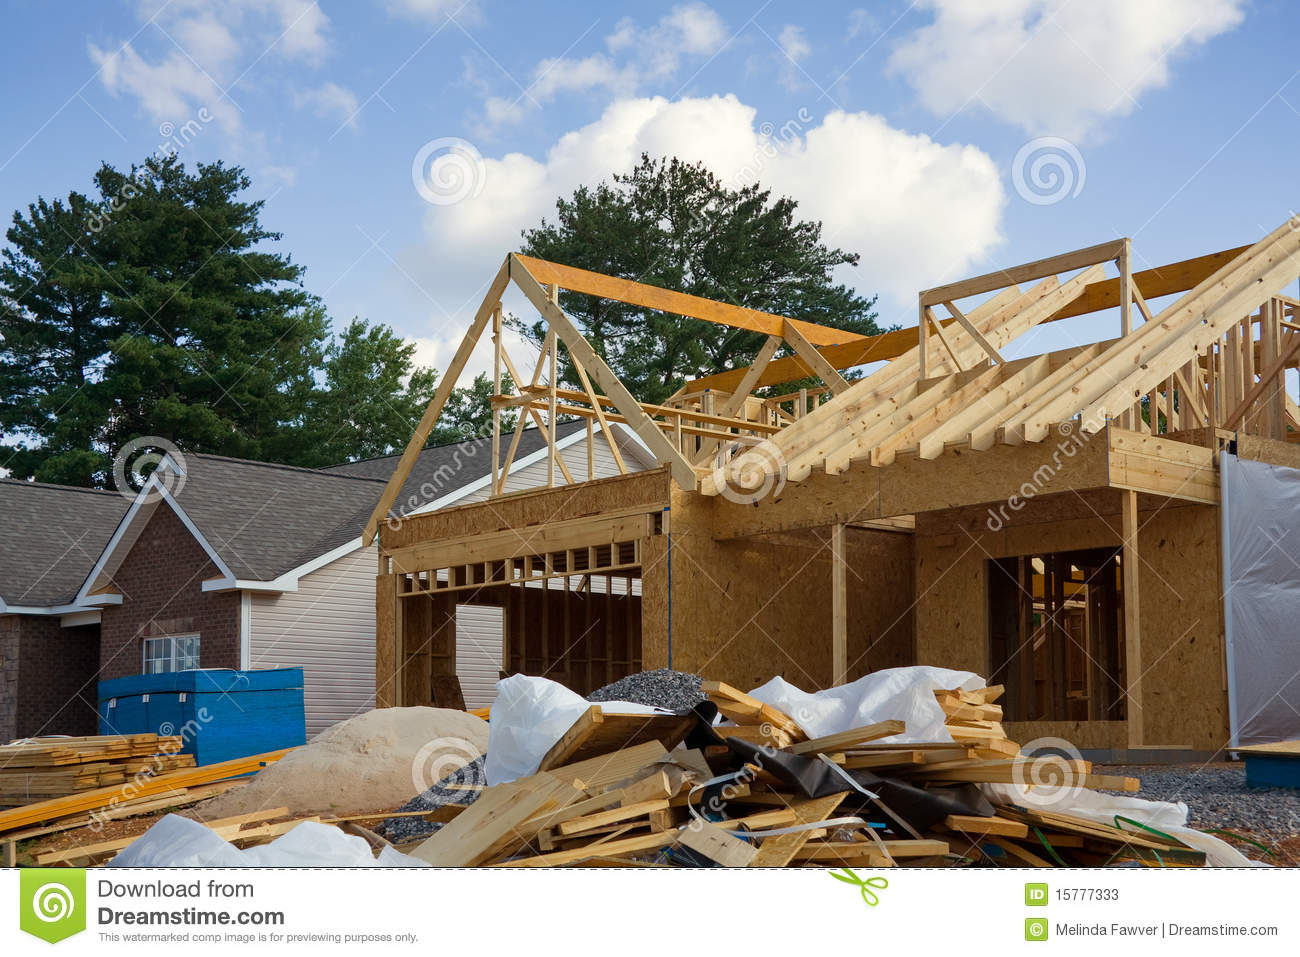 Home construction stages of home construction for Stages of home construction